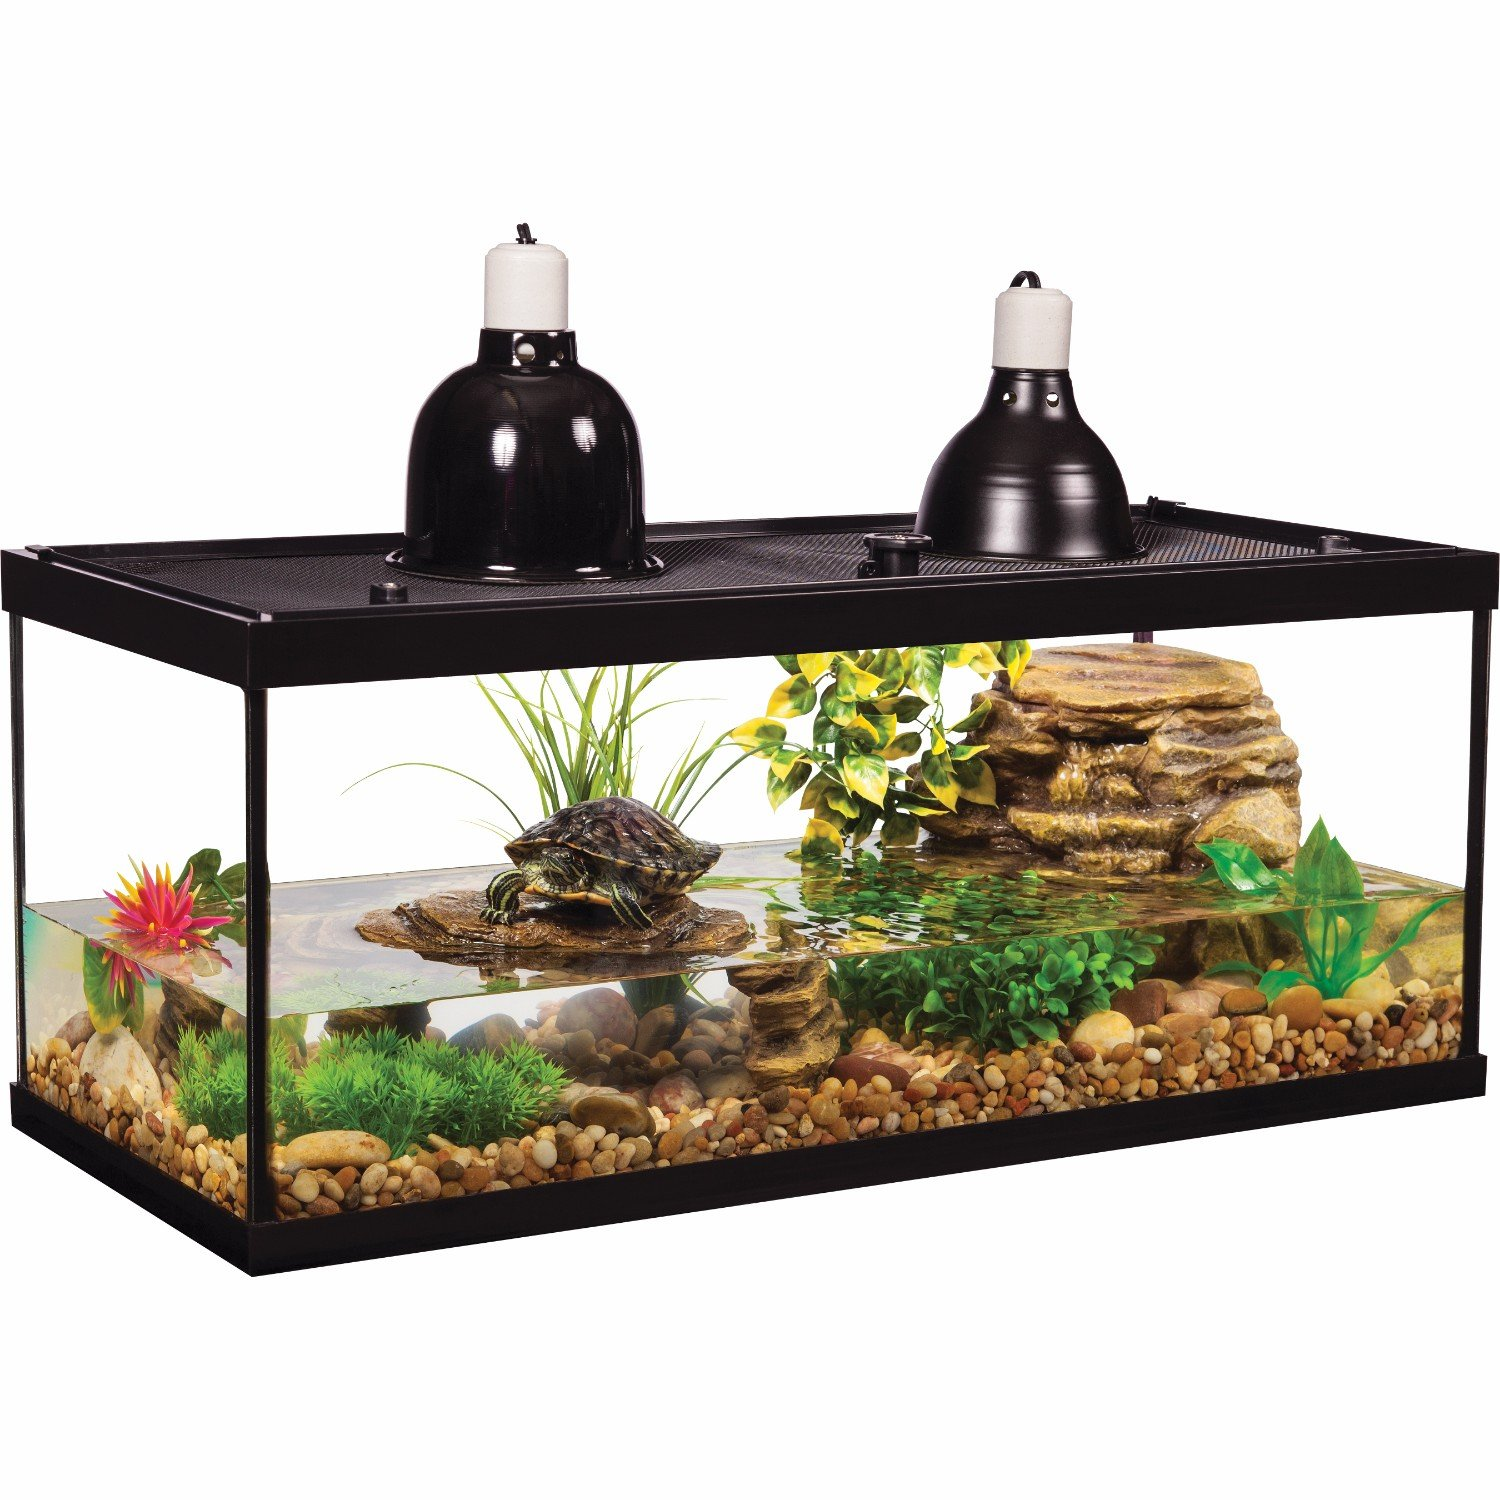 Tetra Deluxe Aquatic Turtle Kit, 20-Gallon, 30 x 12 x 12-Inches